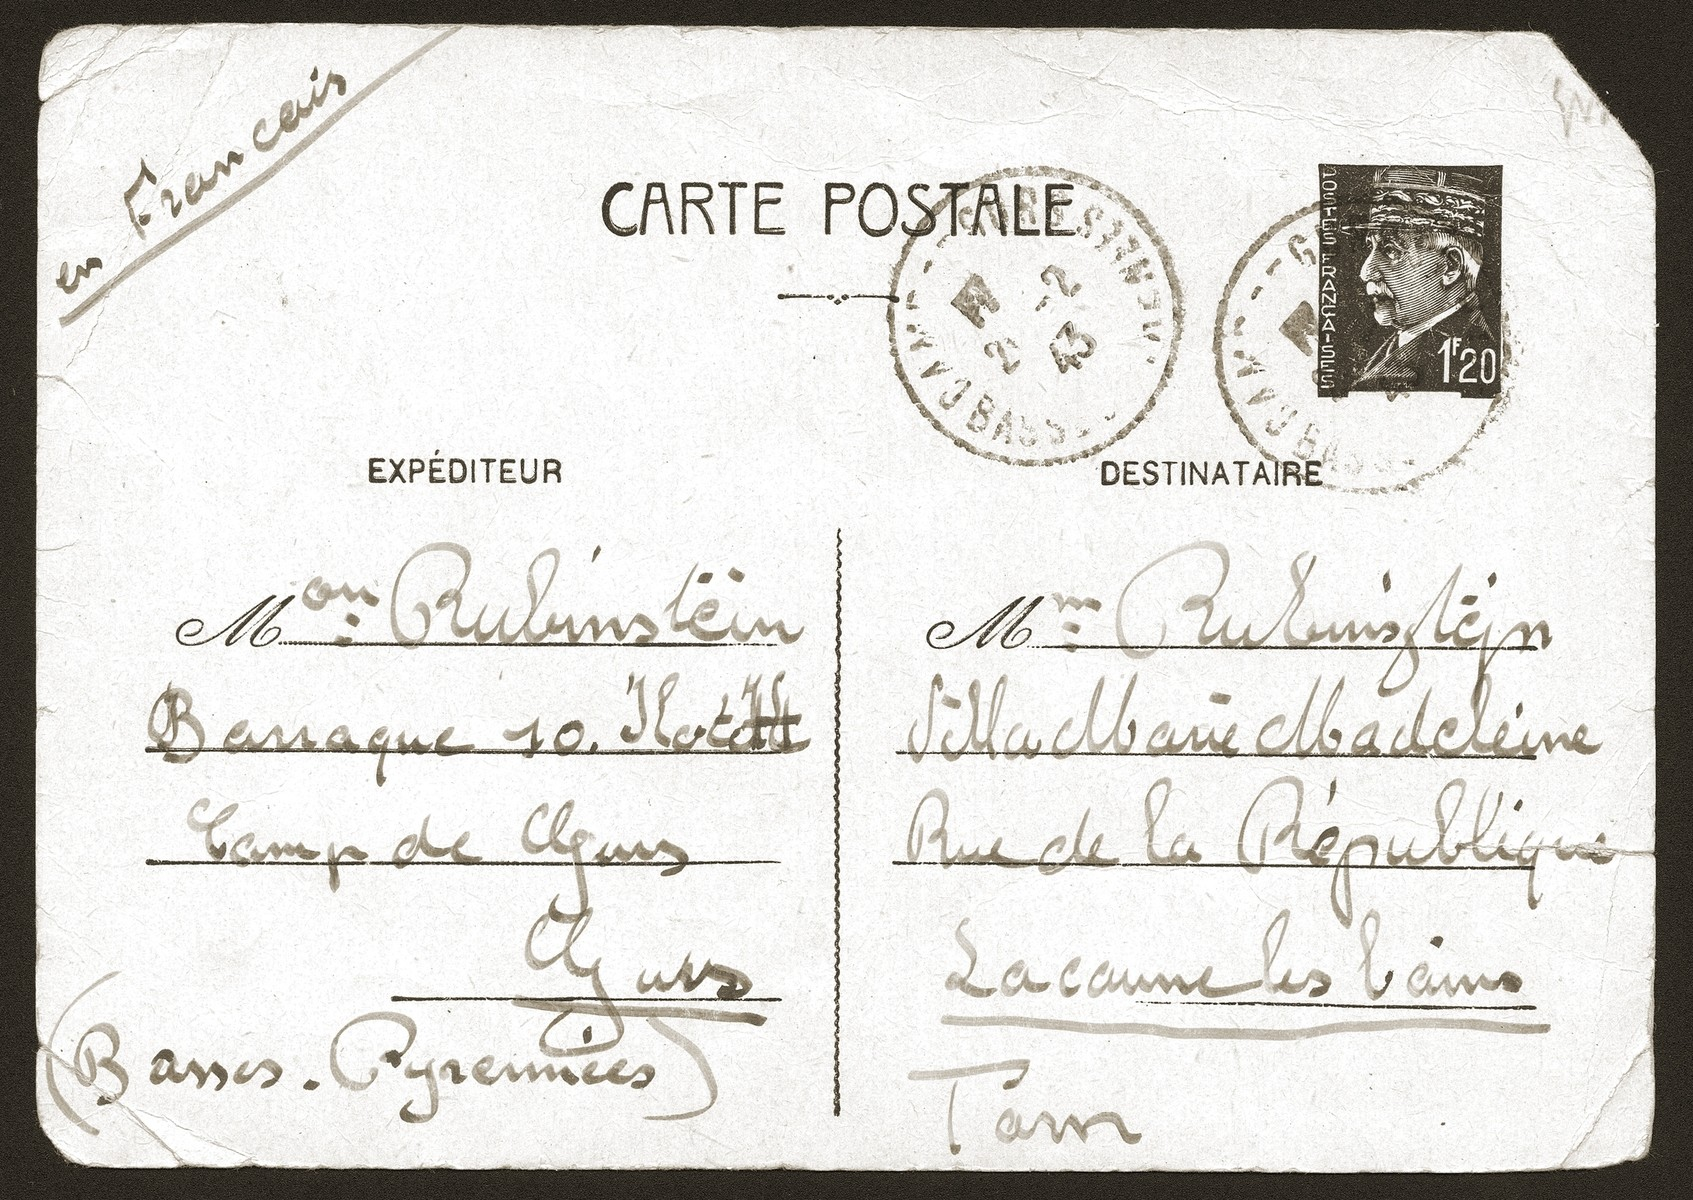 Postcard sent to the Rubinsztejn family by Armand Rubinsztejn during his internment at Gurs.